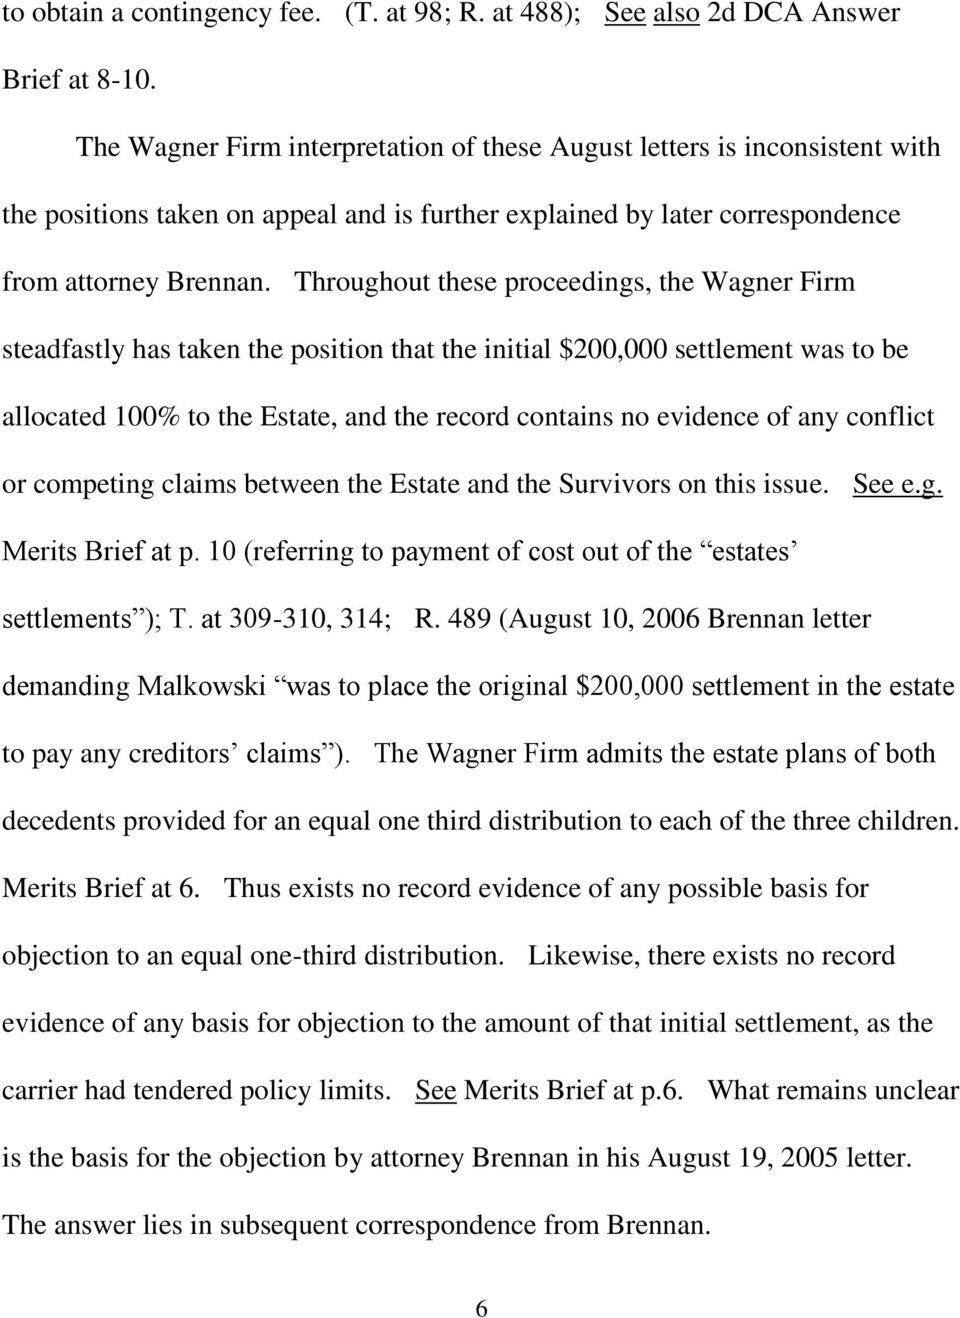 Throughout these proceedings, the Wagner Firm steadfastly has taken the position that the initial $200,000 settlement was to be allocated 100% to the Estate, and the record contains no evidence of